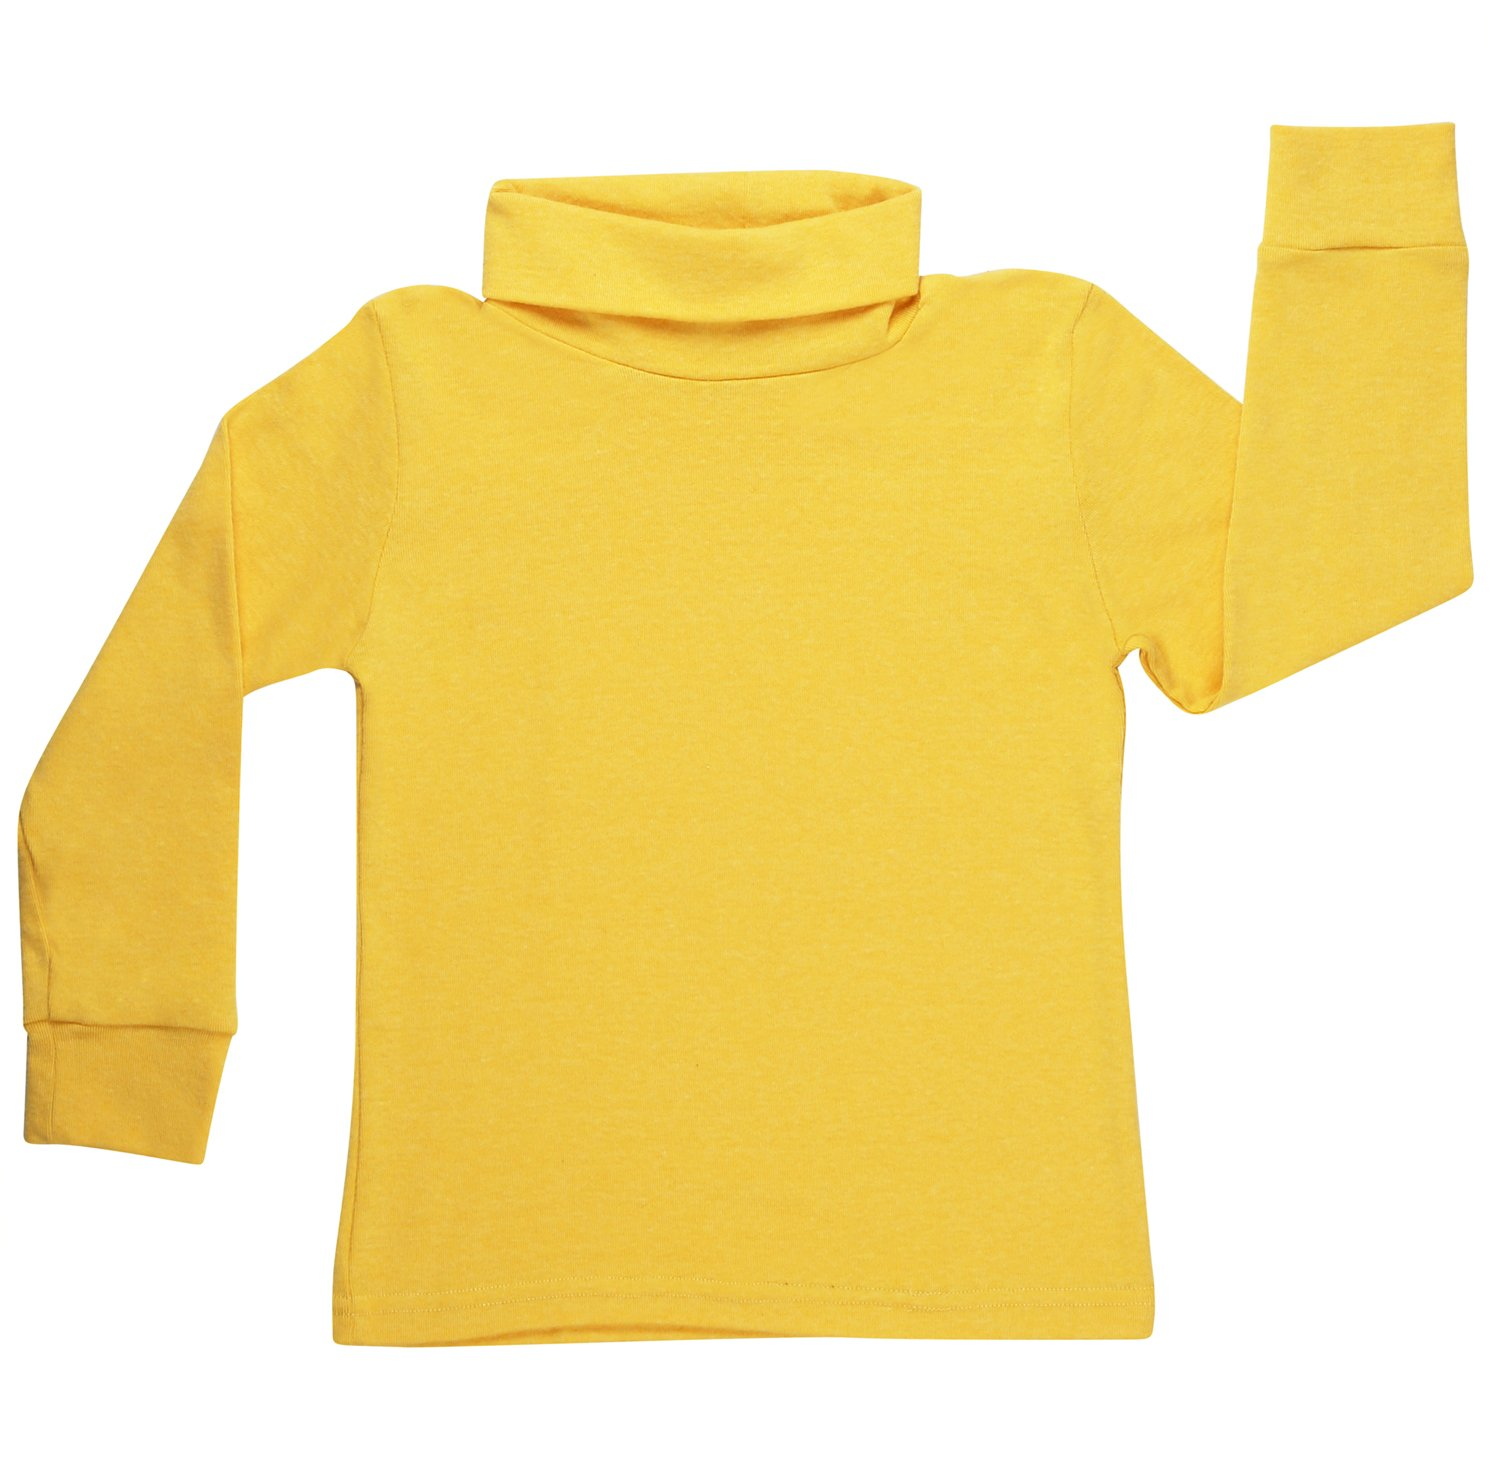 high5 solid Color Turtleneck 100% Cotton Size 8 Yellow